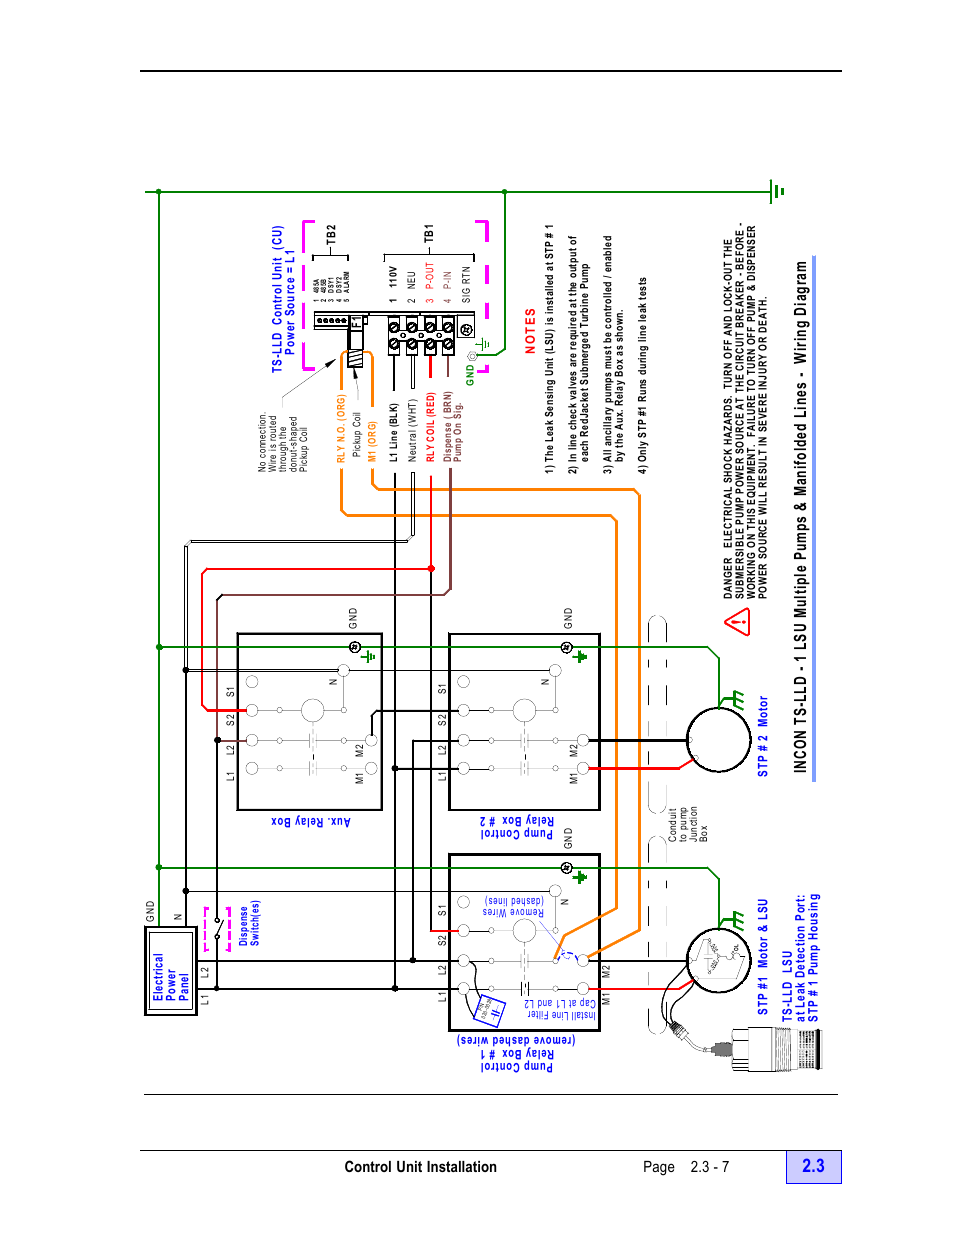 Line W Single Lsu Cu Interface Schematic 7 Control Unit Red Jacket Submersible Pump Wiring Diagram Installation Page 23 Franklin Fueling Systems Ts Lld Manual User